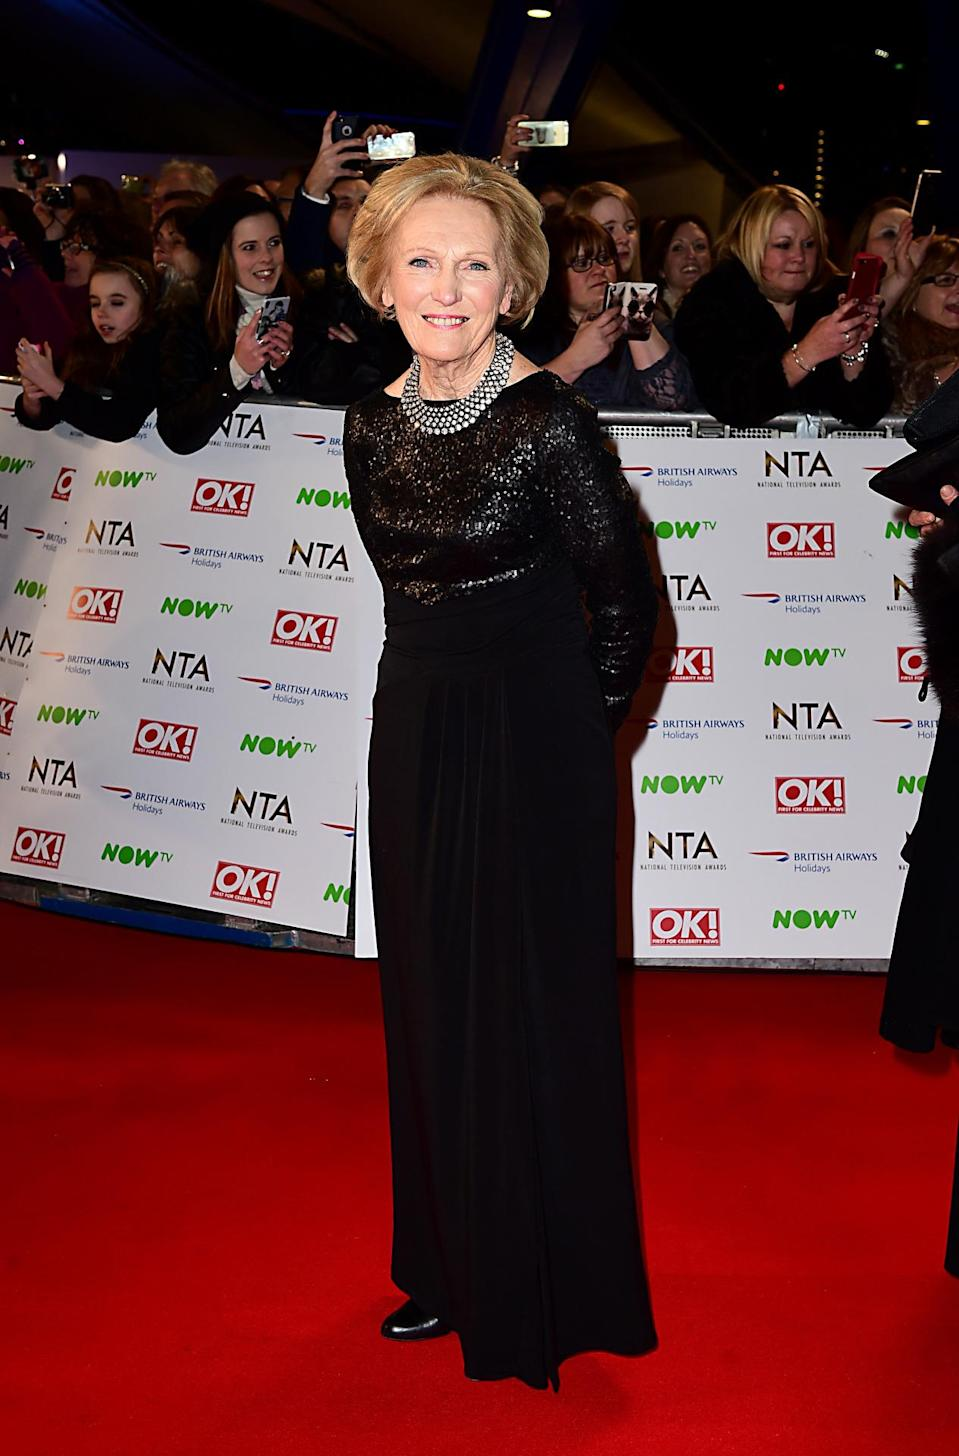 <p>Mary arrived at the National Television Awards looking super chic in a sequinned black gown.</p><p><i>[Photo: PA]</i></p>